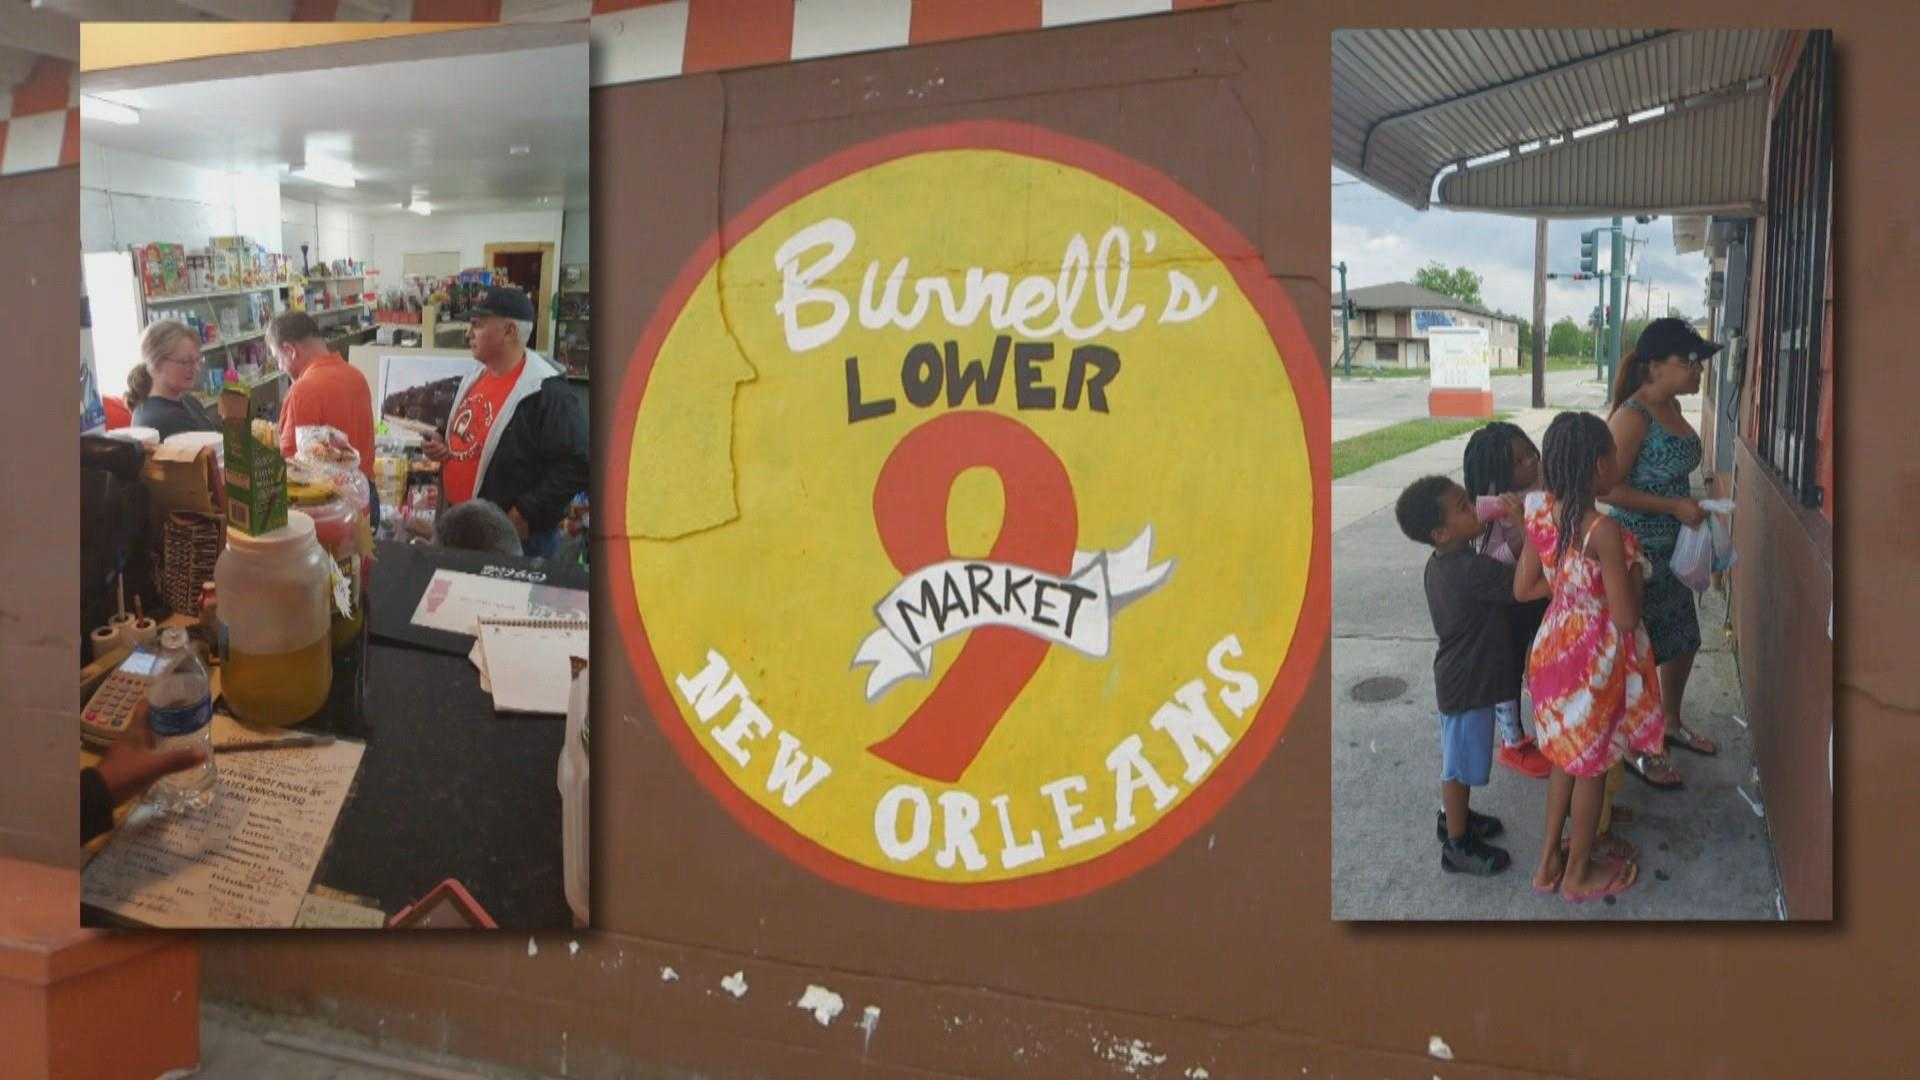 In New Orleans' Lower 9th Ward, grocery store owner keeps doors open